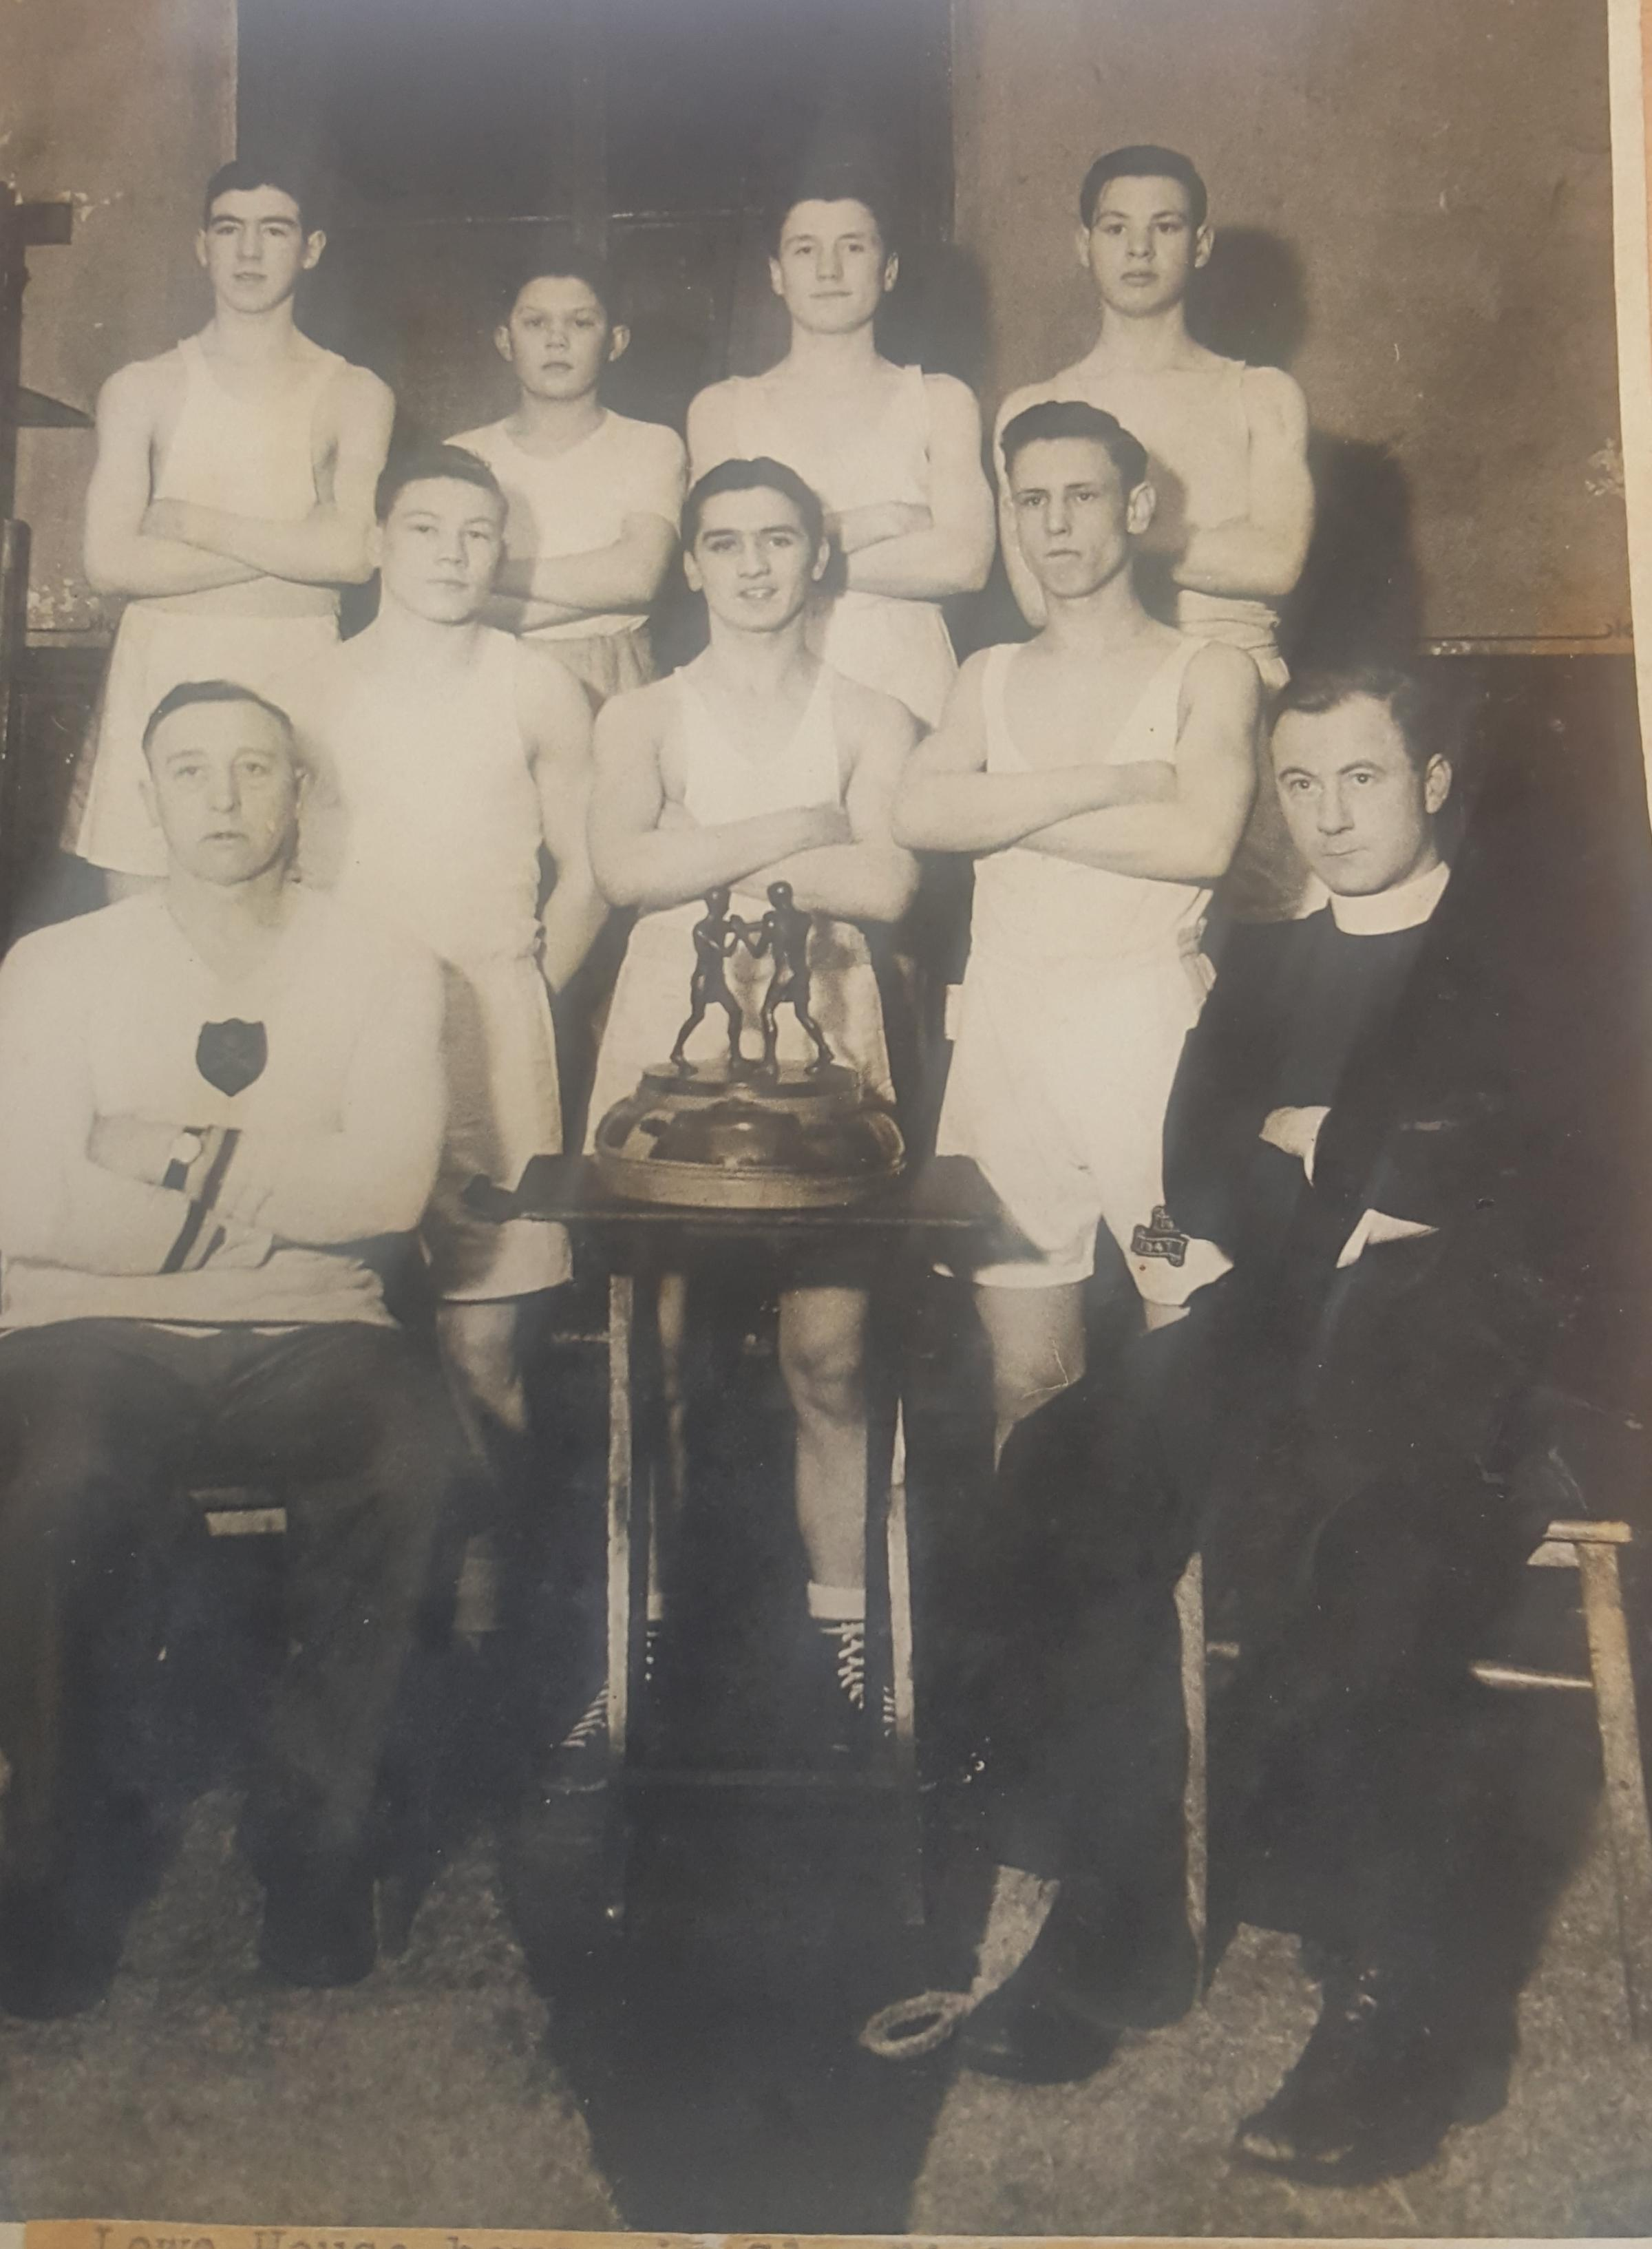 Fighters at Lowe House boxing in the 1940s, with priest Father Kelly and trainer Dick Cowell (front, left) with the International Trophy.Harry Fairclough shared this photograph with the Star. Send your images to news@sthelensstar.co.uk